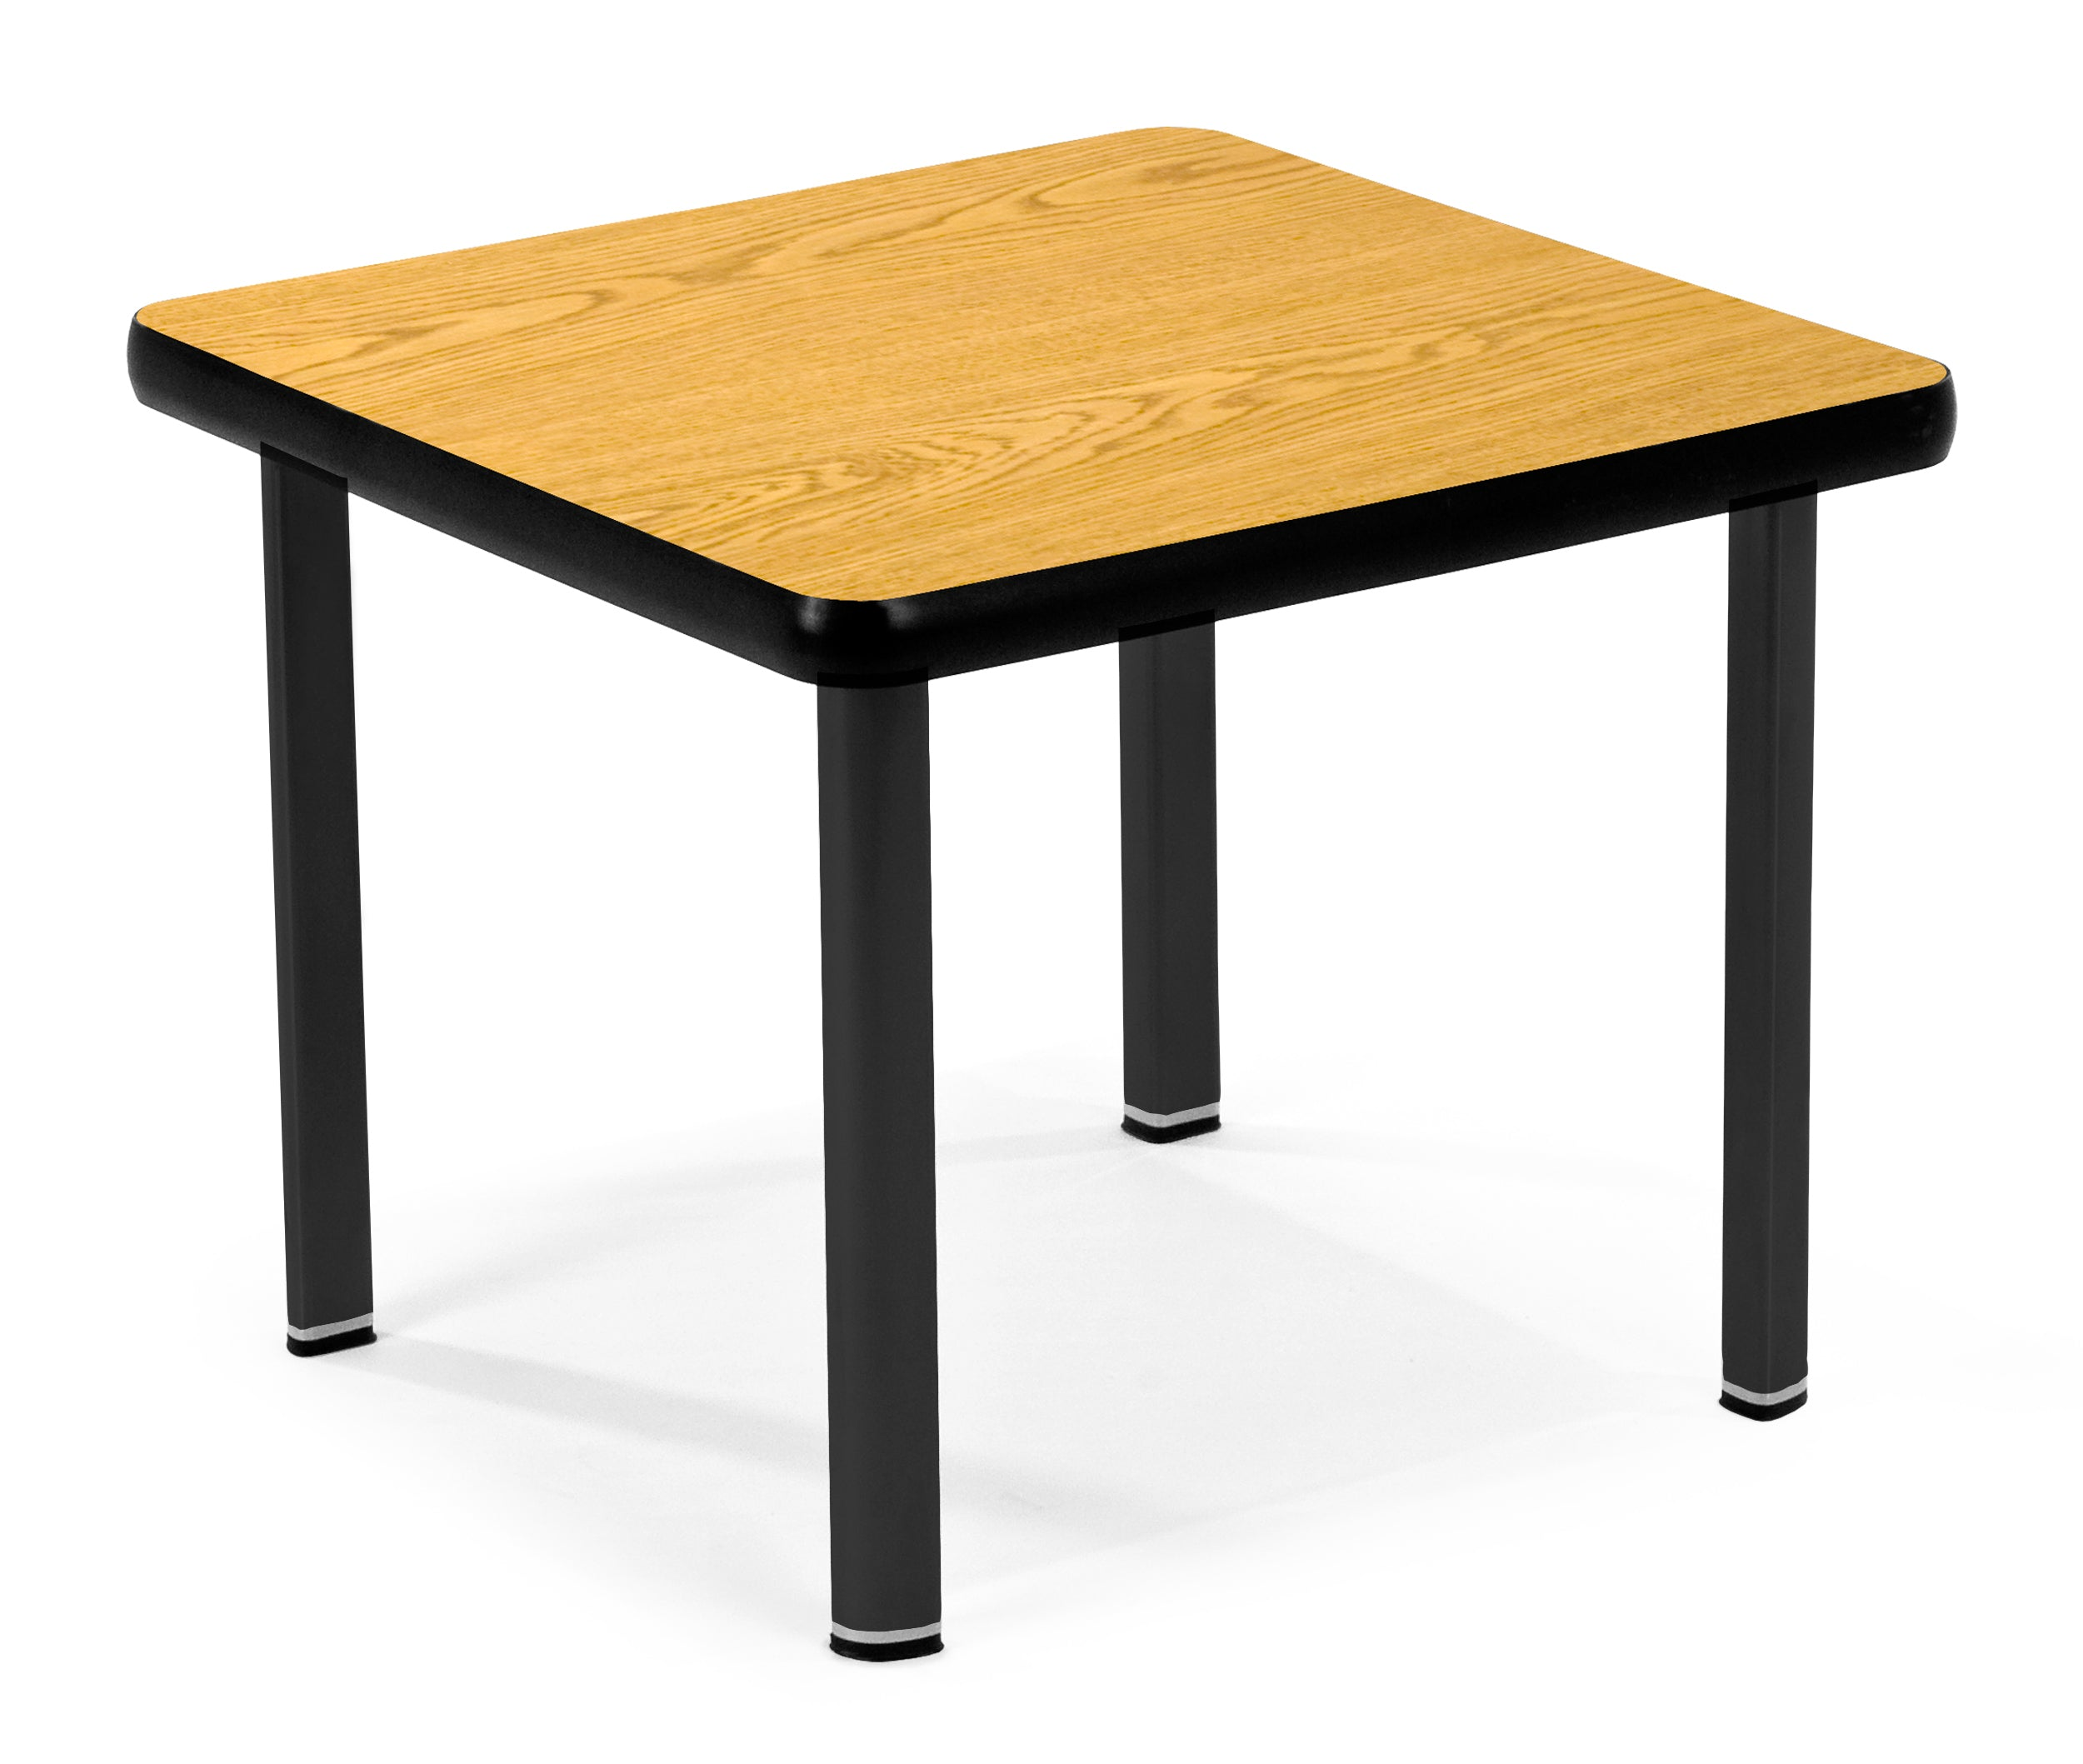 Ofminc Model ET2020 End Table with 4 Legs